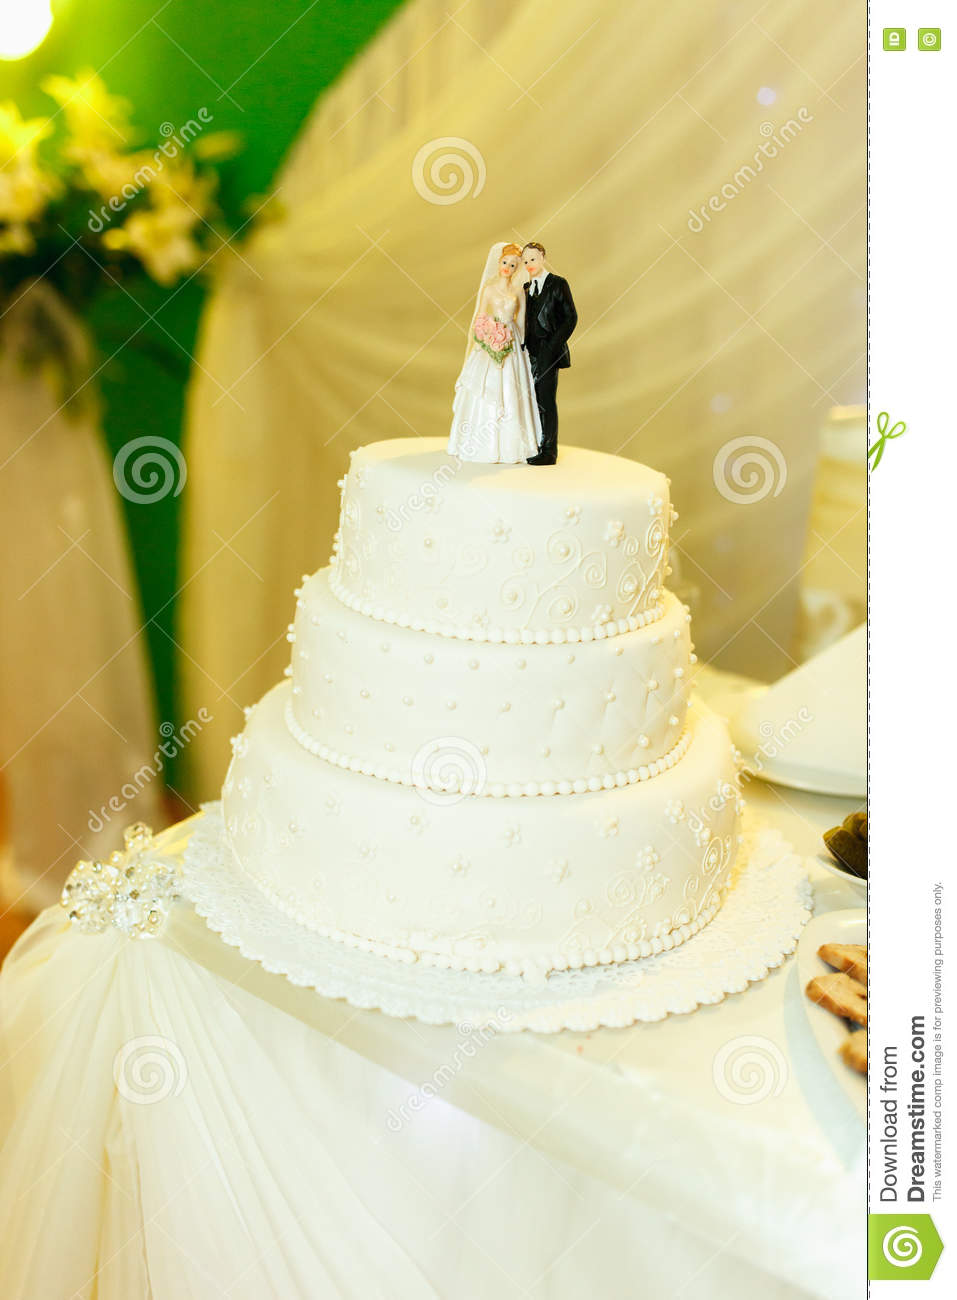 White Wedding Cake With Figures Of Newlyweds On The Top Stock Photo ...